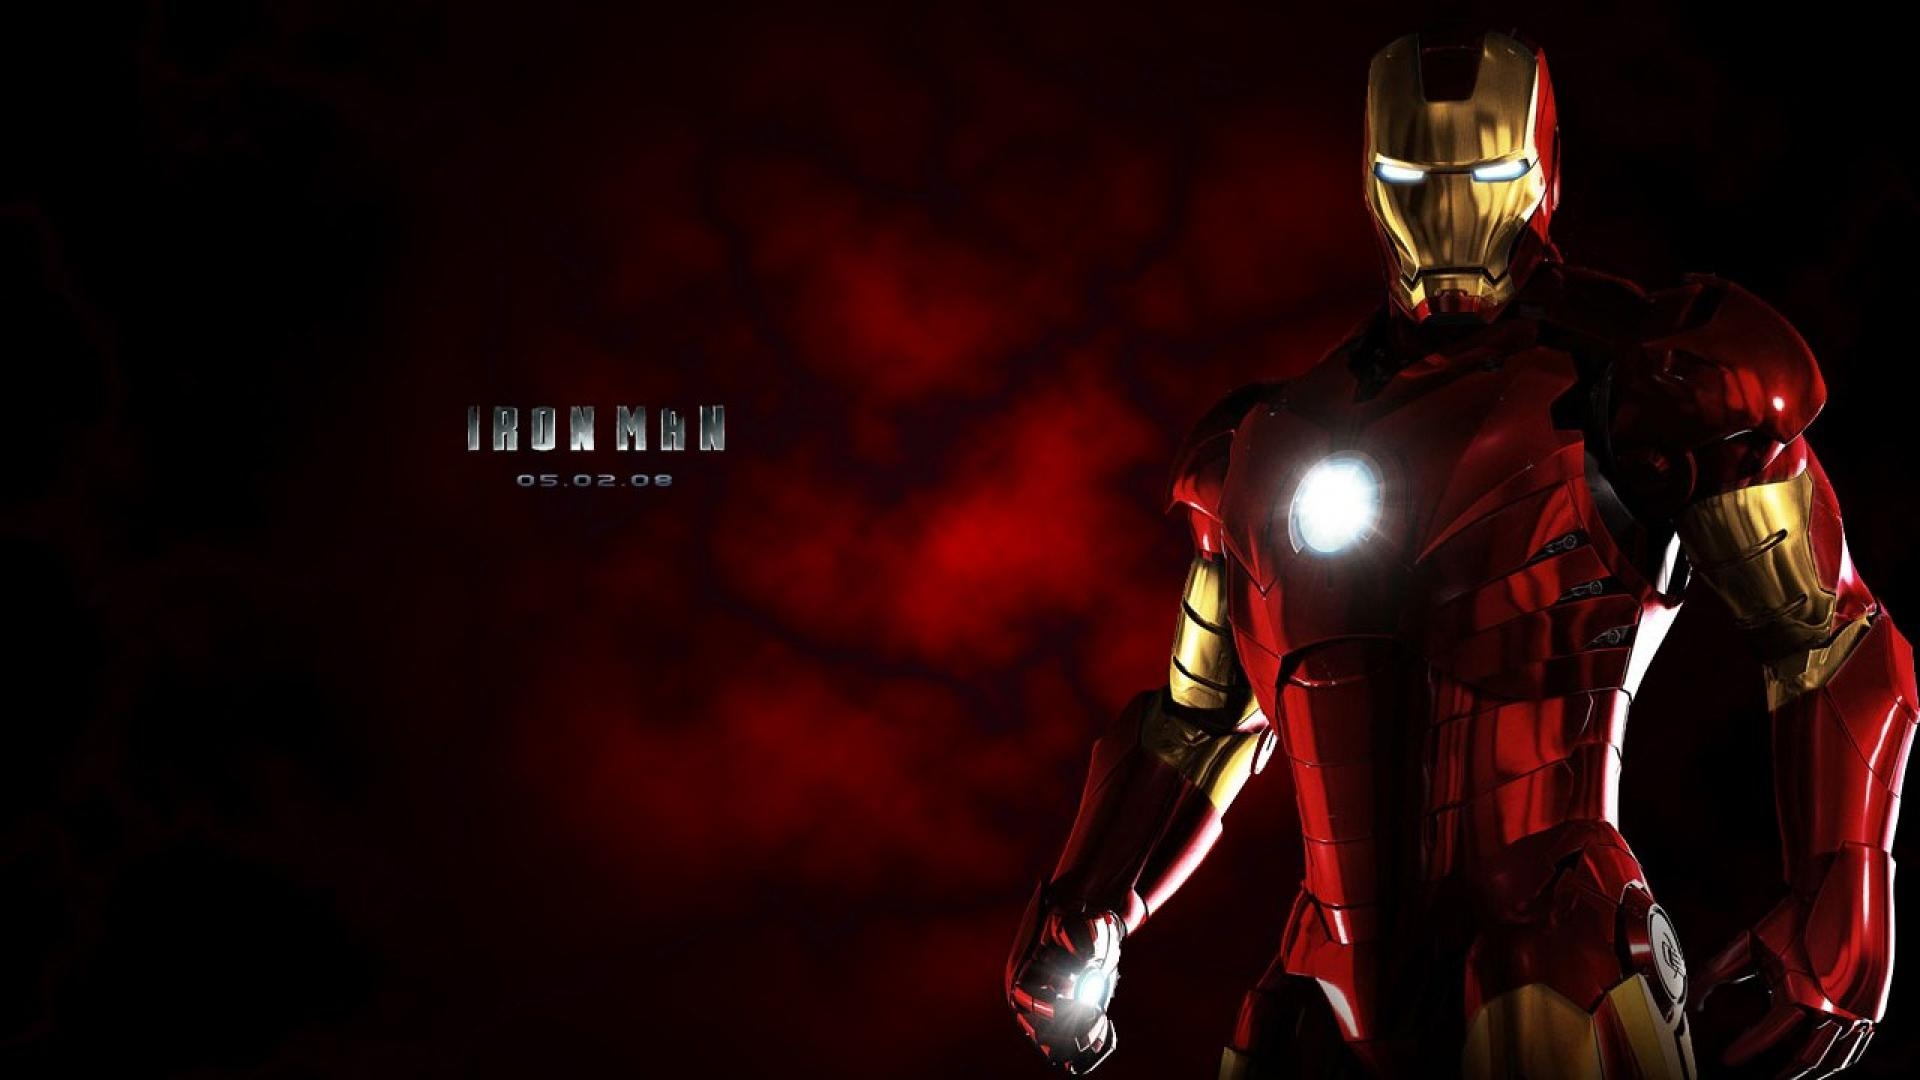 Iron Man Wallpapers Full Hd Desktop Background: Iron Man Wallpapers